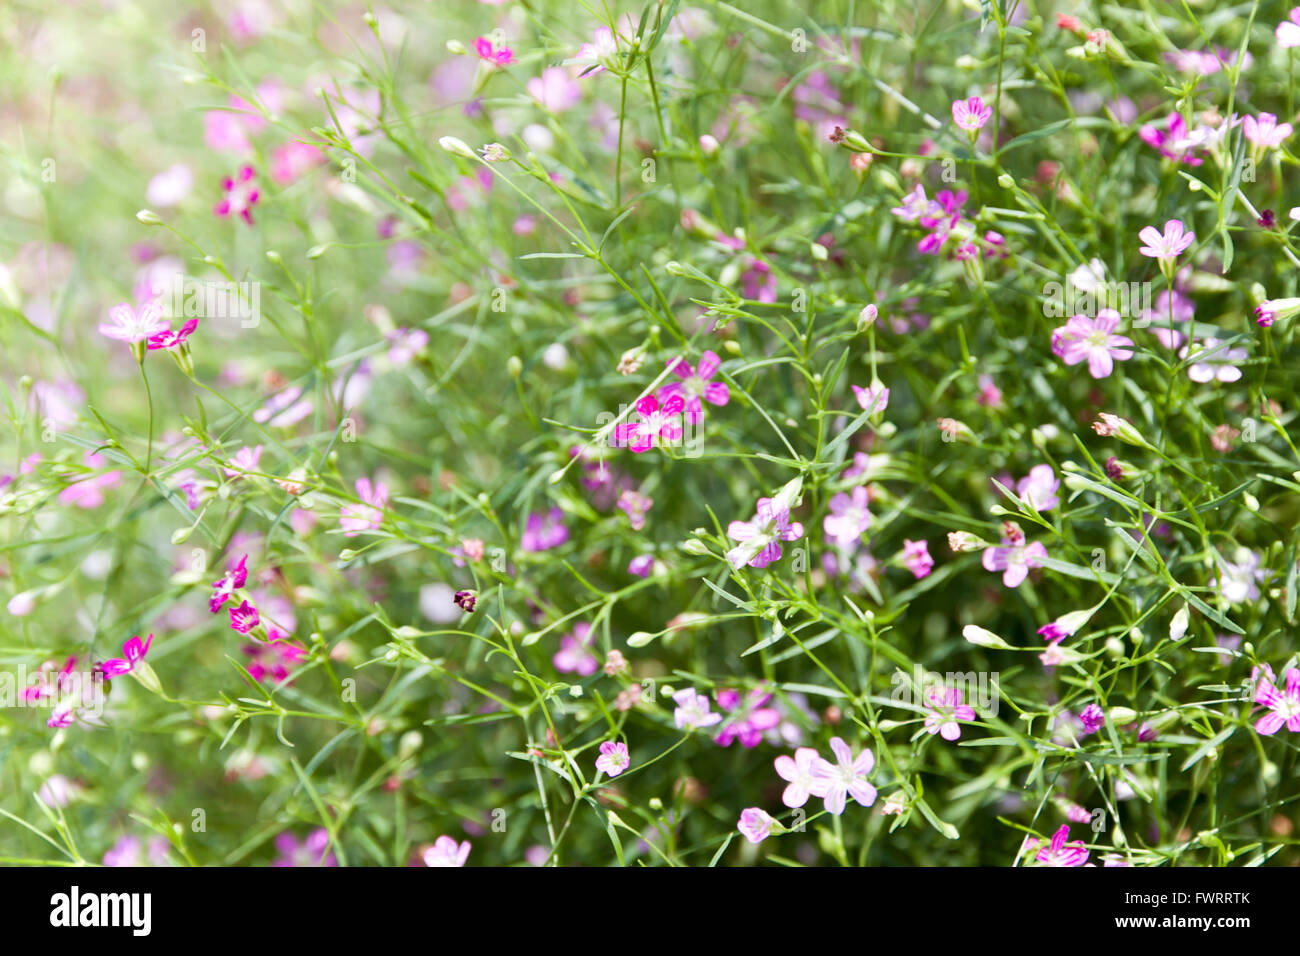 A Plant Of The Genus Gypsophila In The Pink Family Small Pink Stock